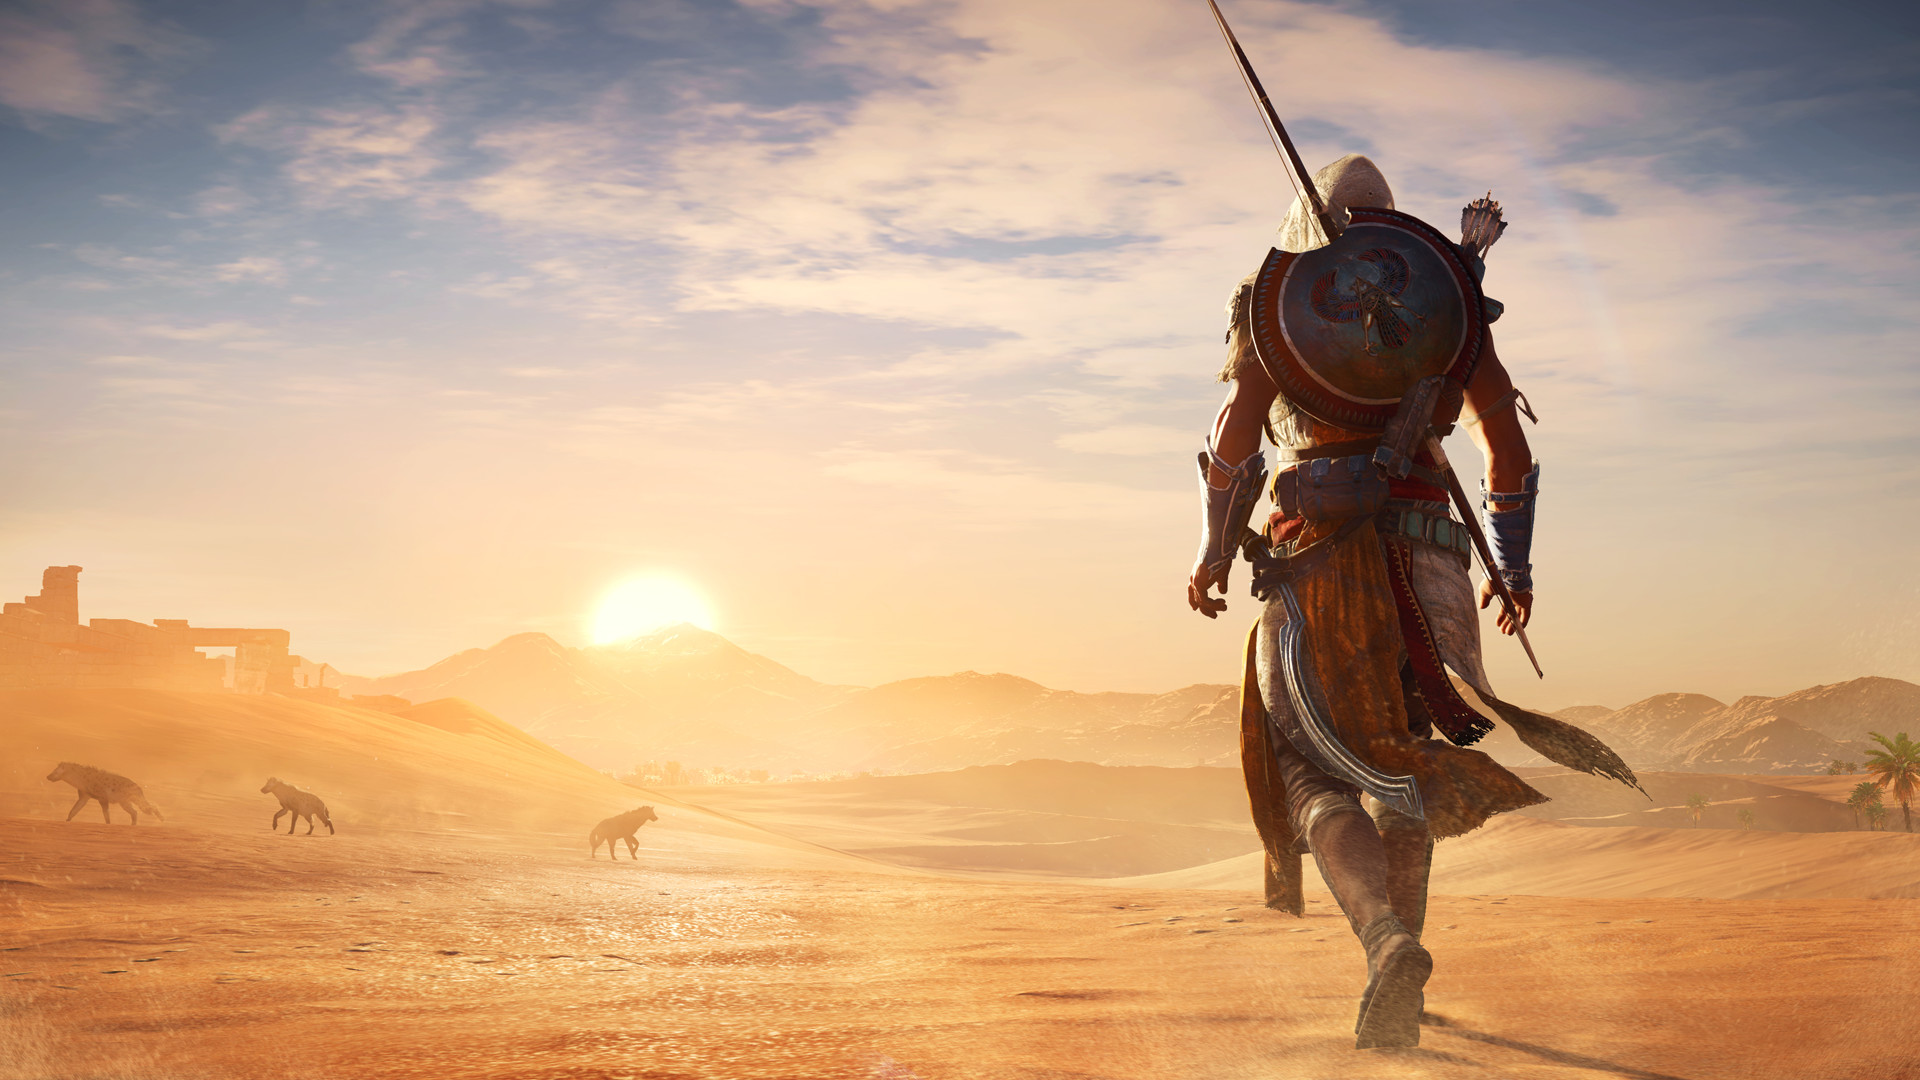 1517739119 476 assassins creed origins torrent download - Assassin's Creed Origins Torrent Download